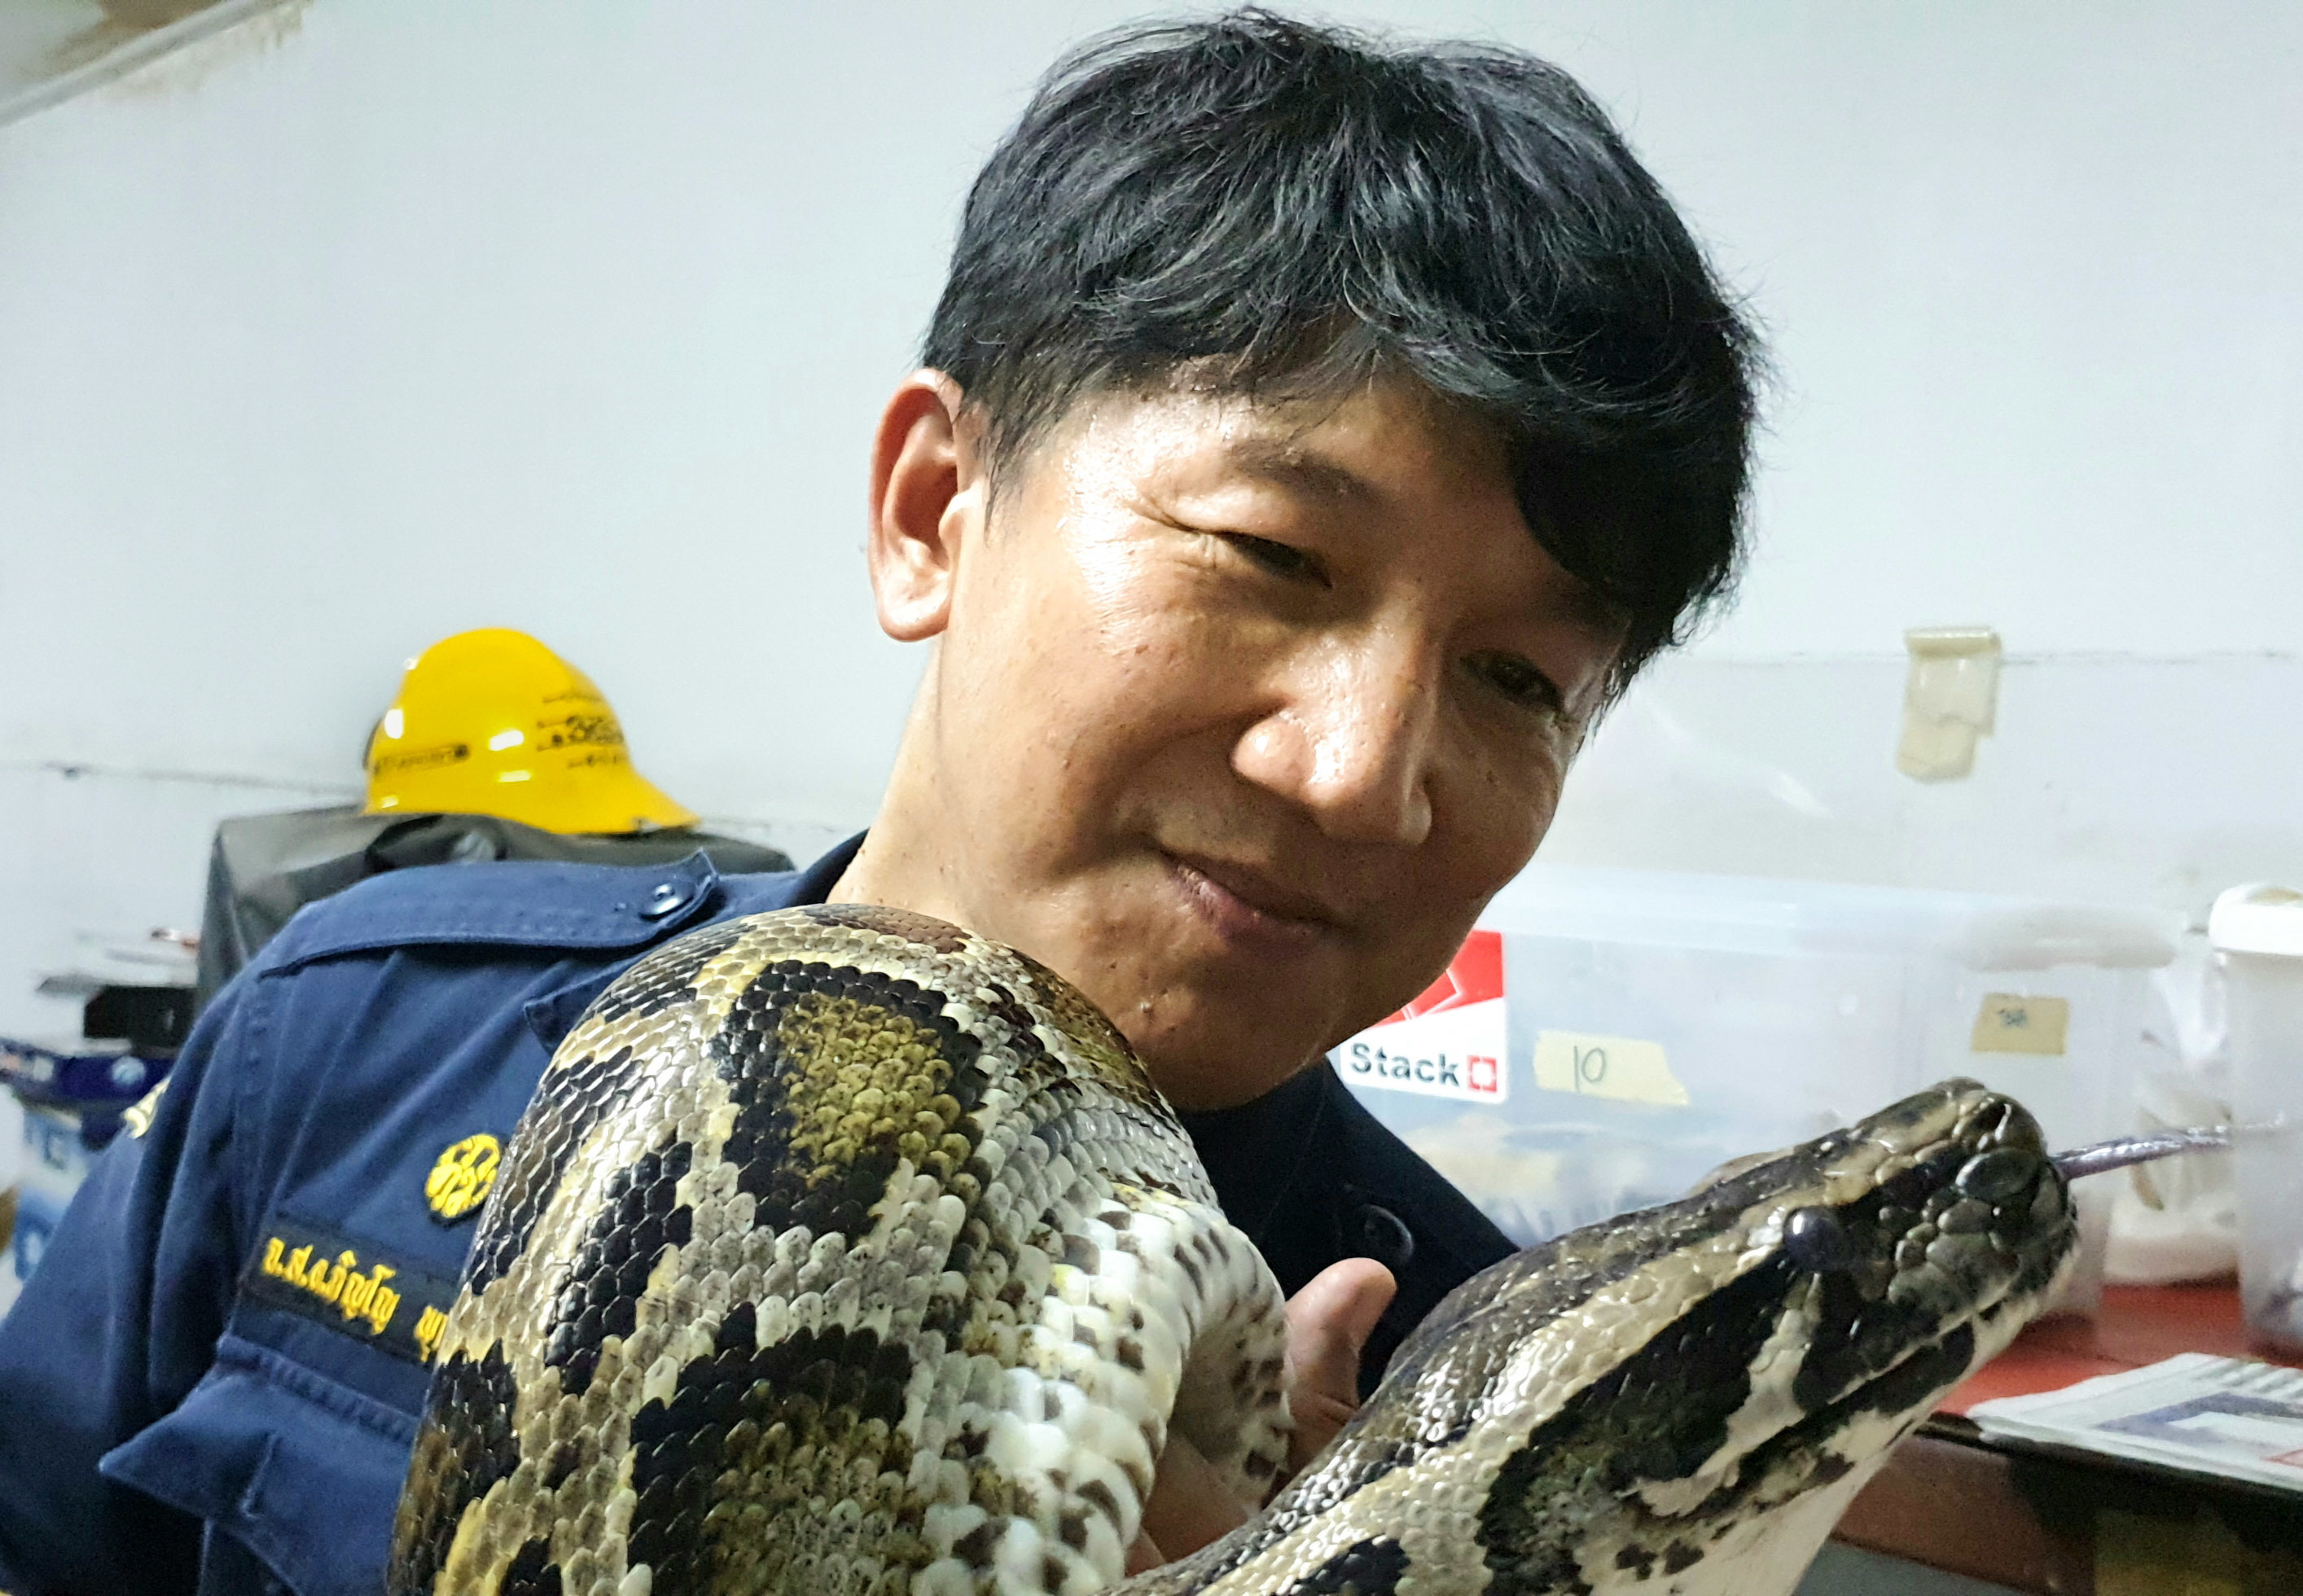 When Snakes Slither Into Bangkok Homes, This Is The Wrangler Who Gets Rid Of Them